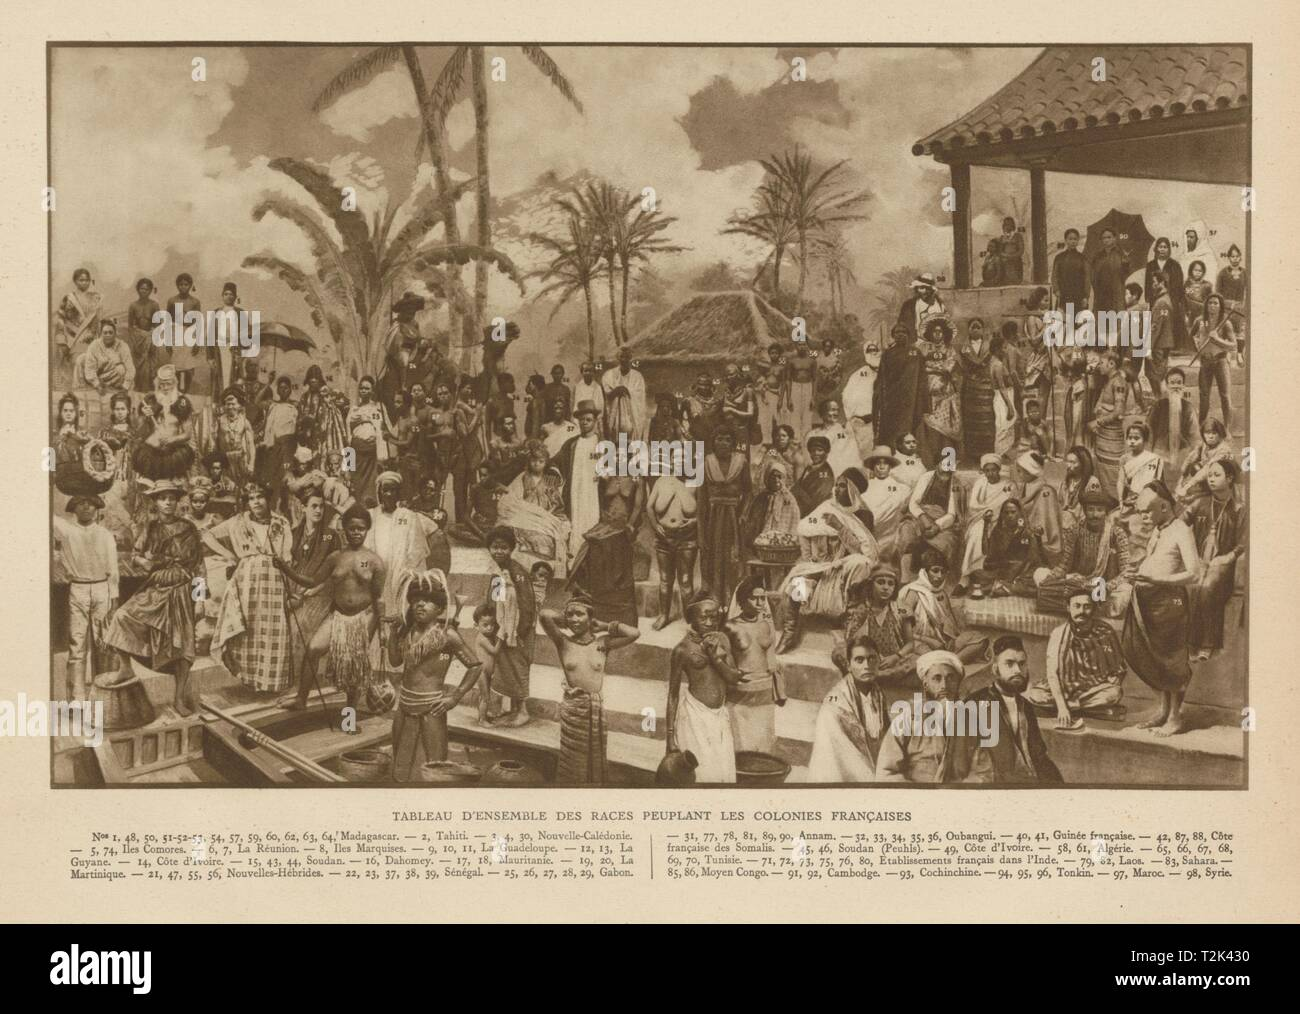 Tableau des races des colonies Francaises. People of the French colonies 1929 - Stock Image